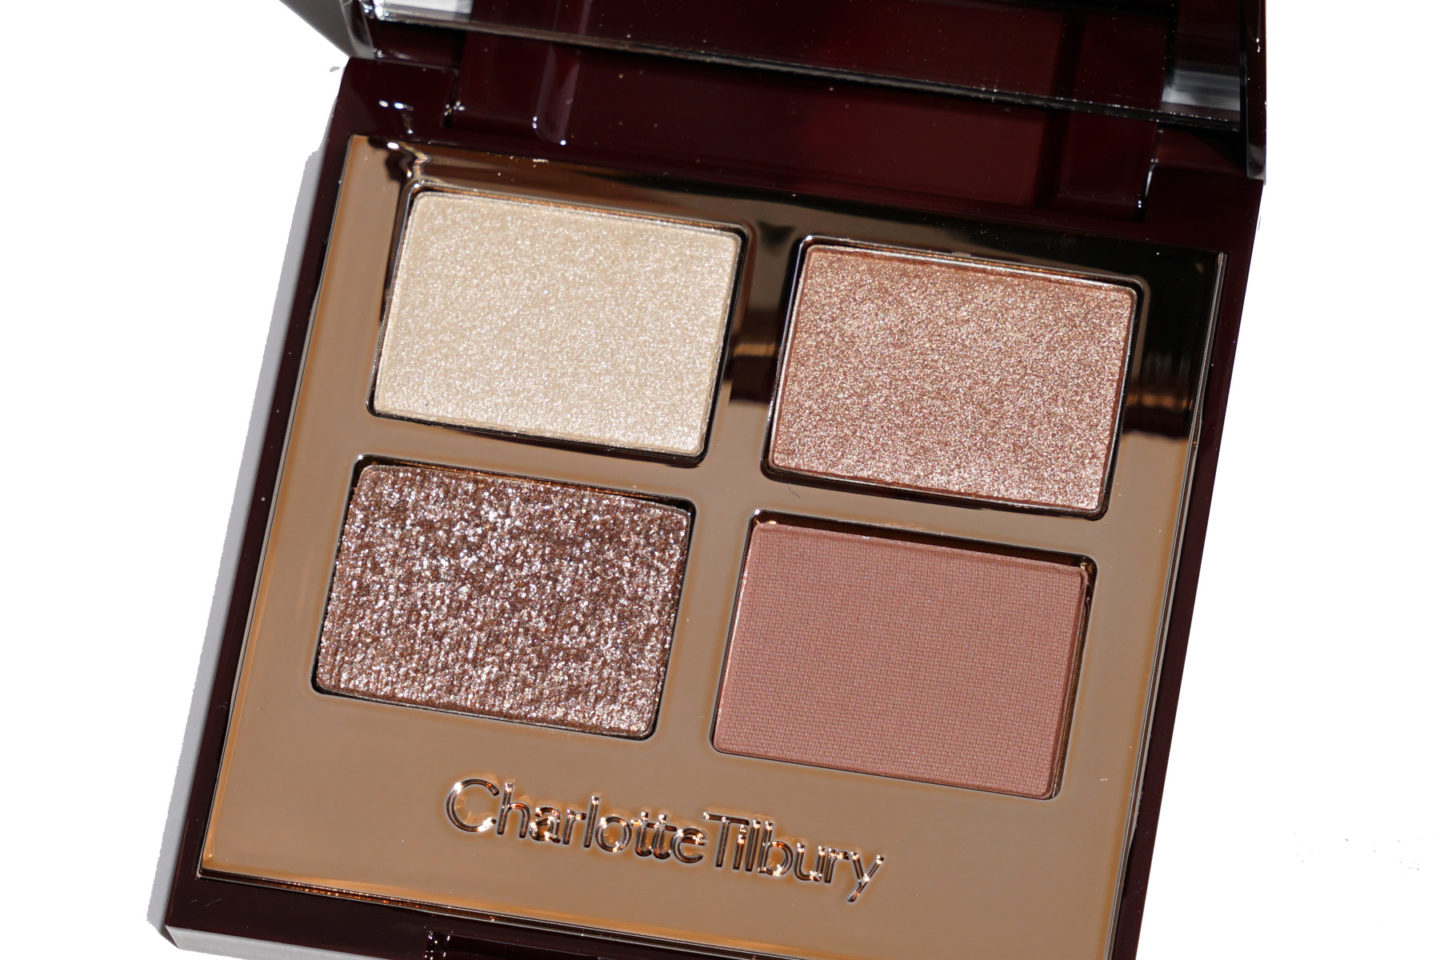 Charlotte Tilbury Bigger Brighter Eyes Filter Exaggereyes Eyeshadow Palette Review + Swatches